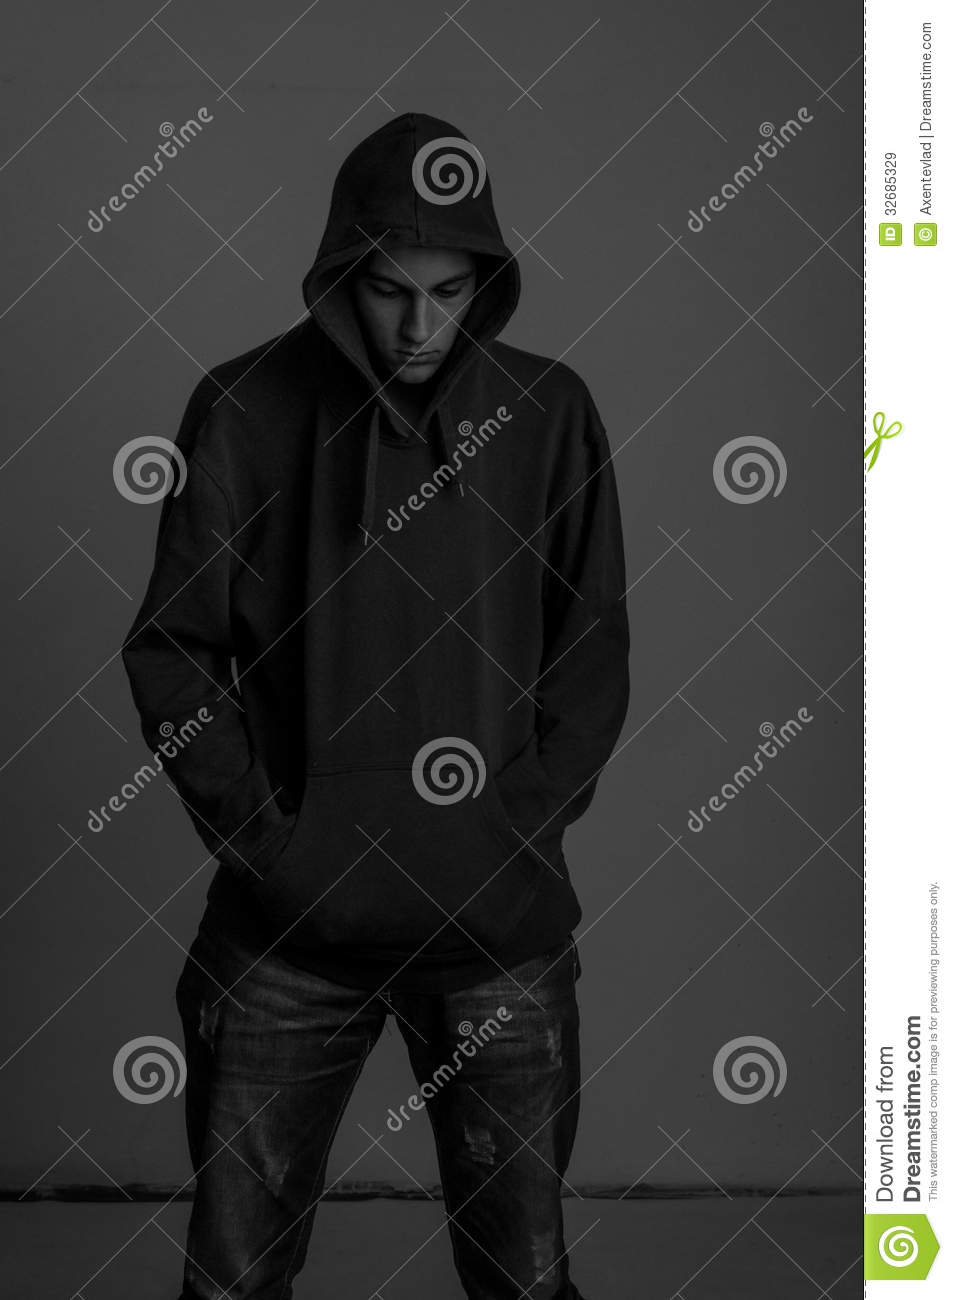 Black And White Photo Of Upsed Teenager With Hoodie